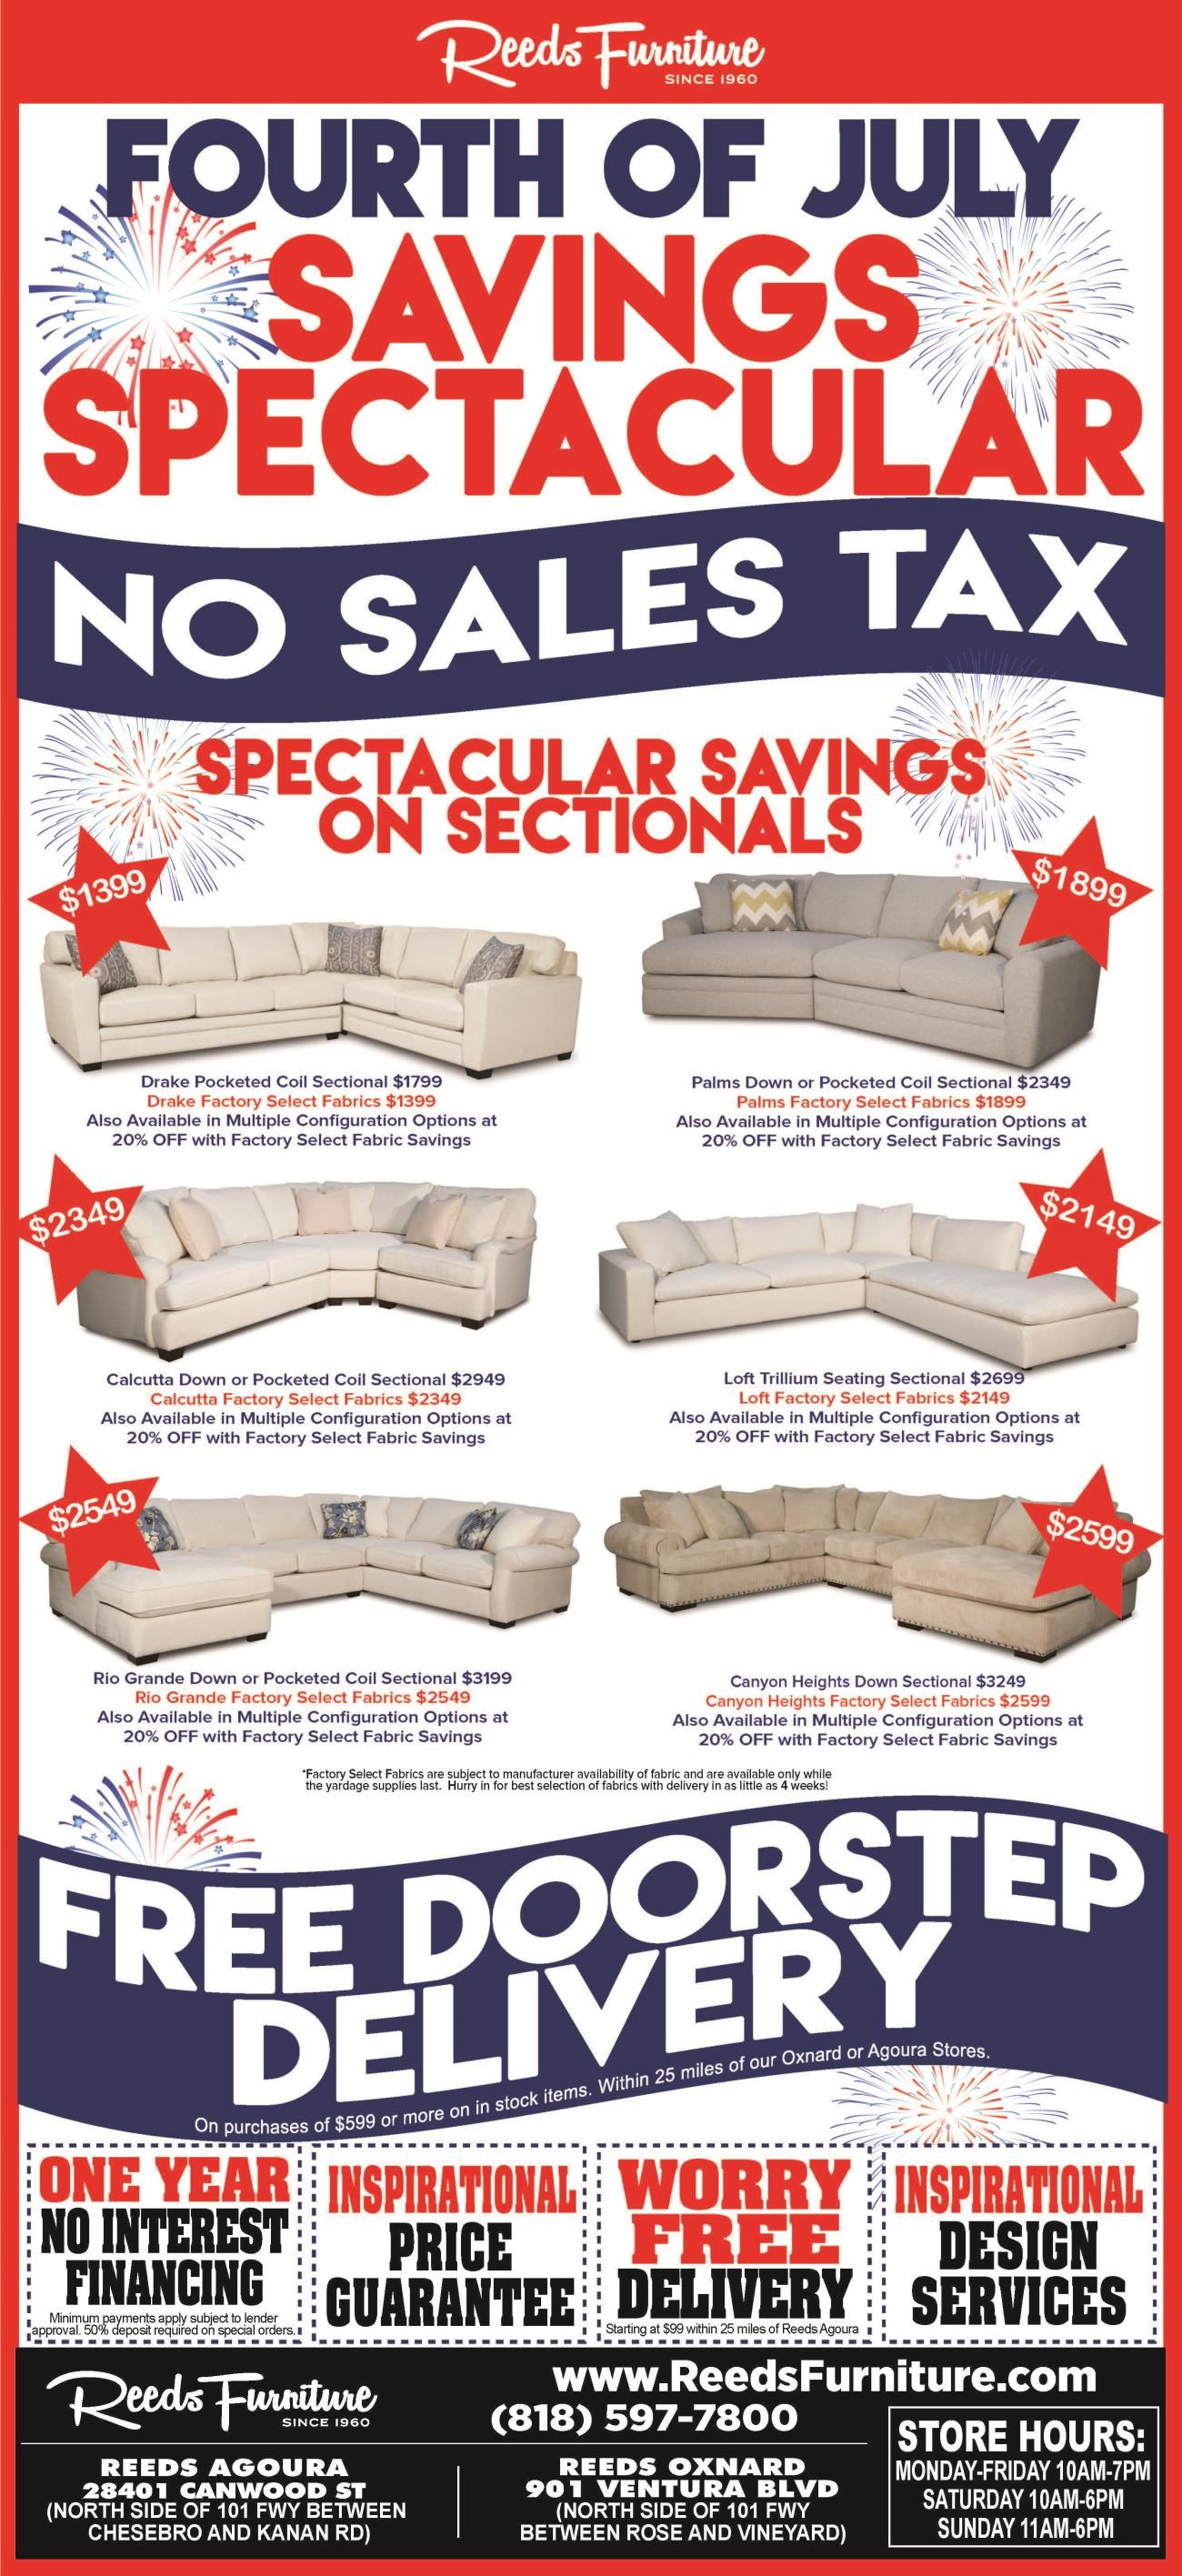 Reeds Furniture For The Best S And Deals On In Los Angeles Thousand Oaks Simi Valley Agoura Hills Oxnard Calabas Malibu